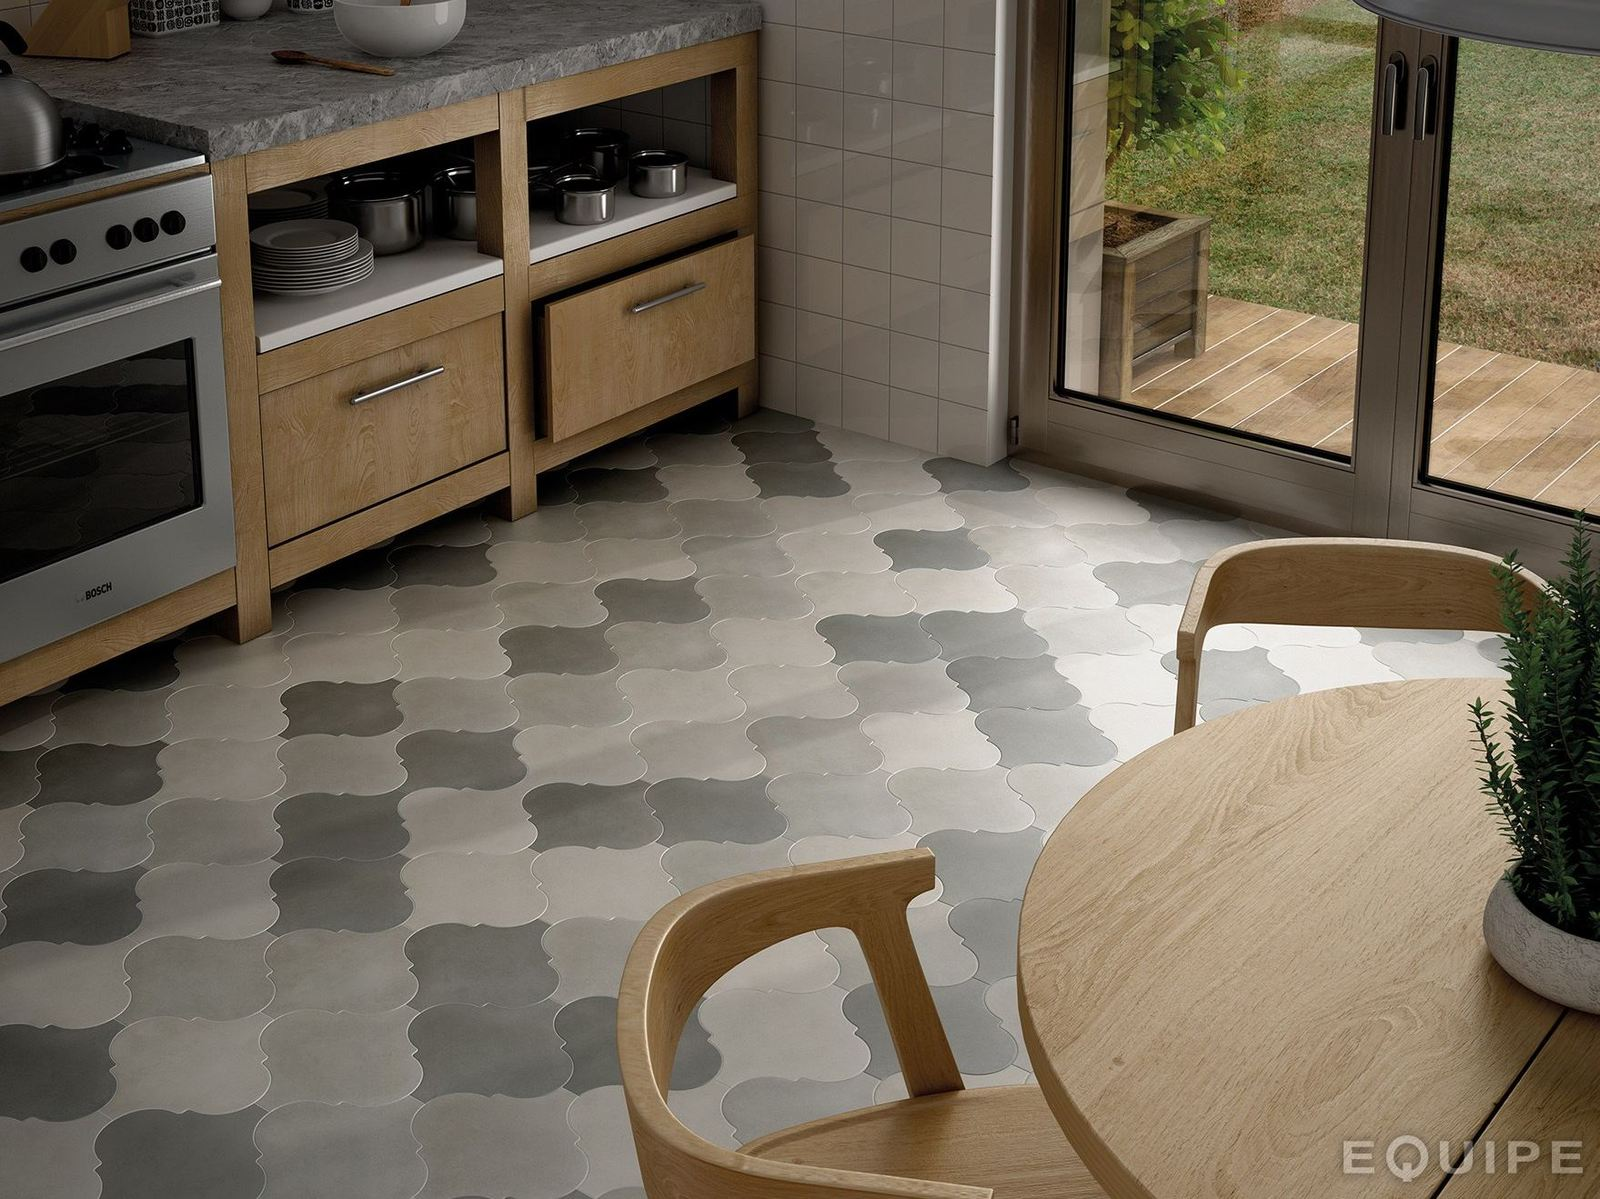 tile for kitchen floor designs on a budget 21 arabesque ideas wall and backsplash view in gallery grey 9 jpg